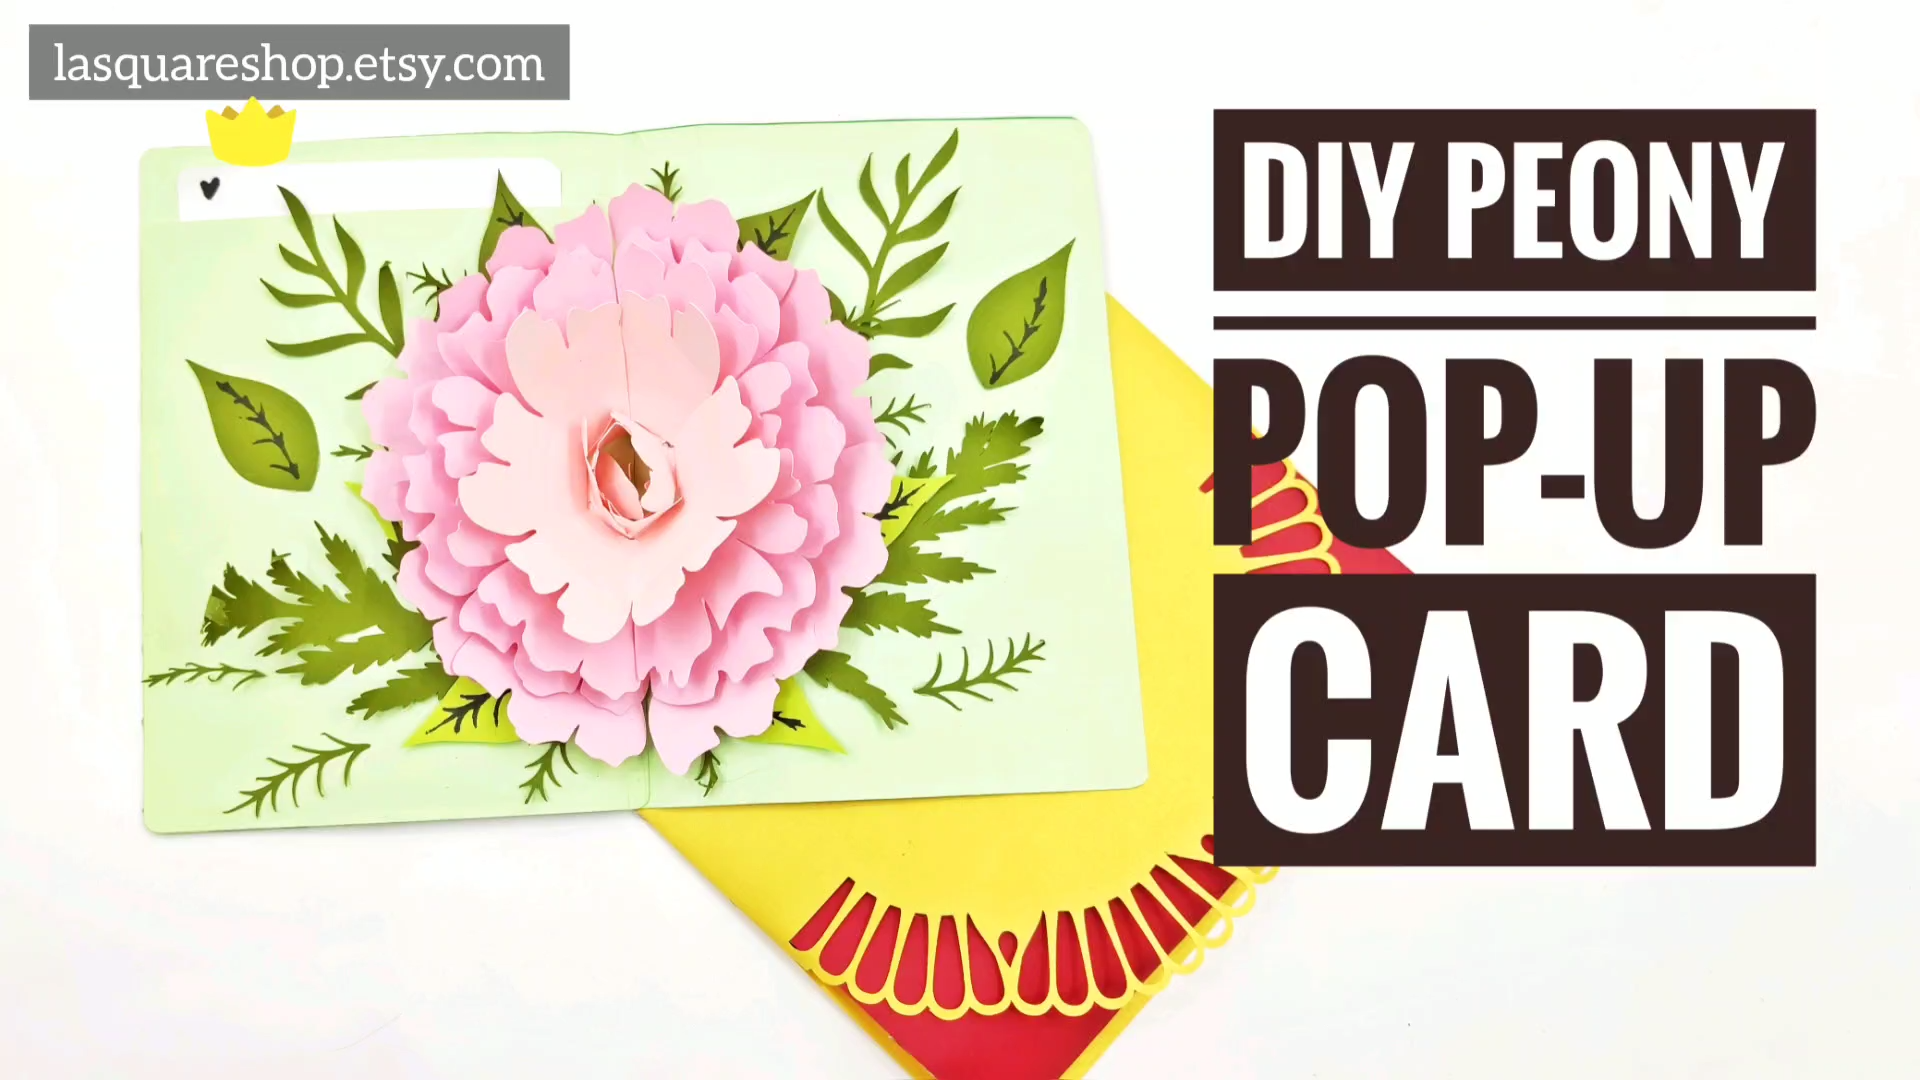 3d Pop Up Greeting Card Diy Flower Pop Up Card Printable Etsy Video Video Pop Up Flower Cards Pop Up Card Templates Pop Up Christmas Cards